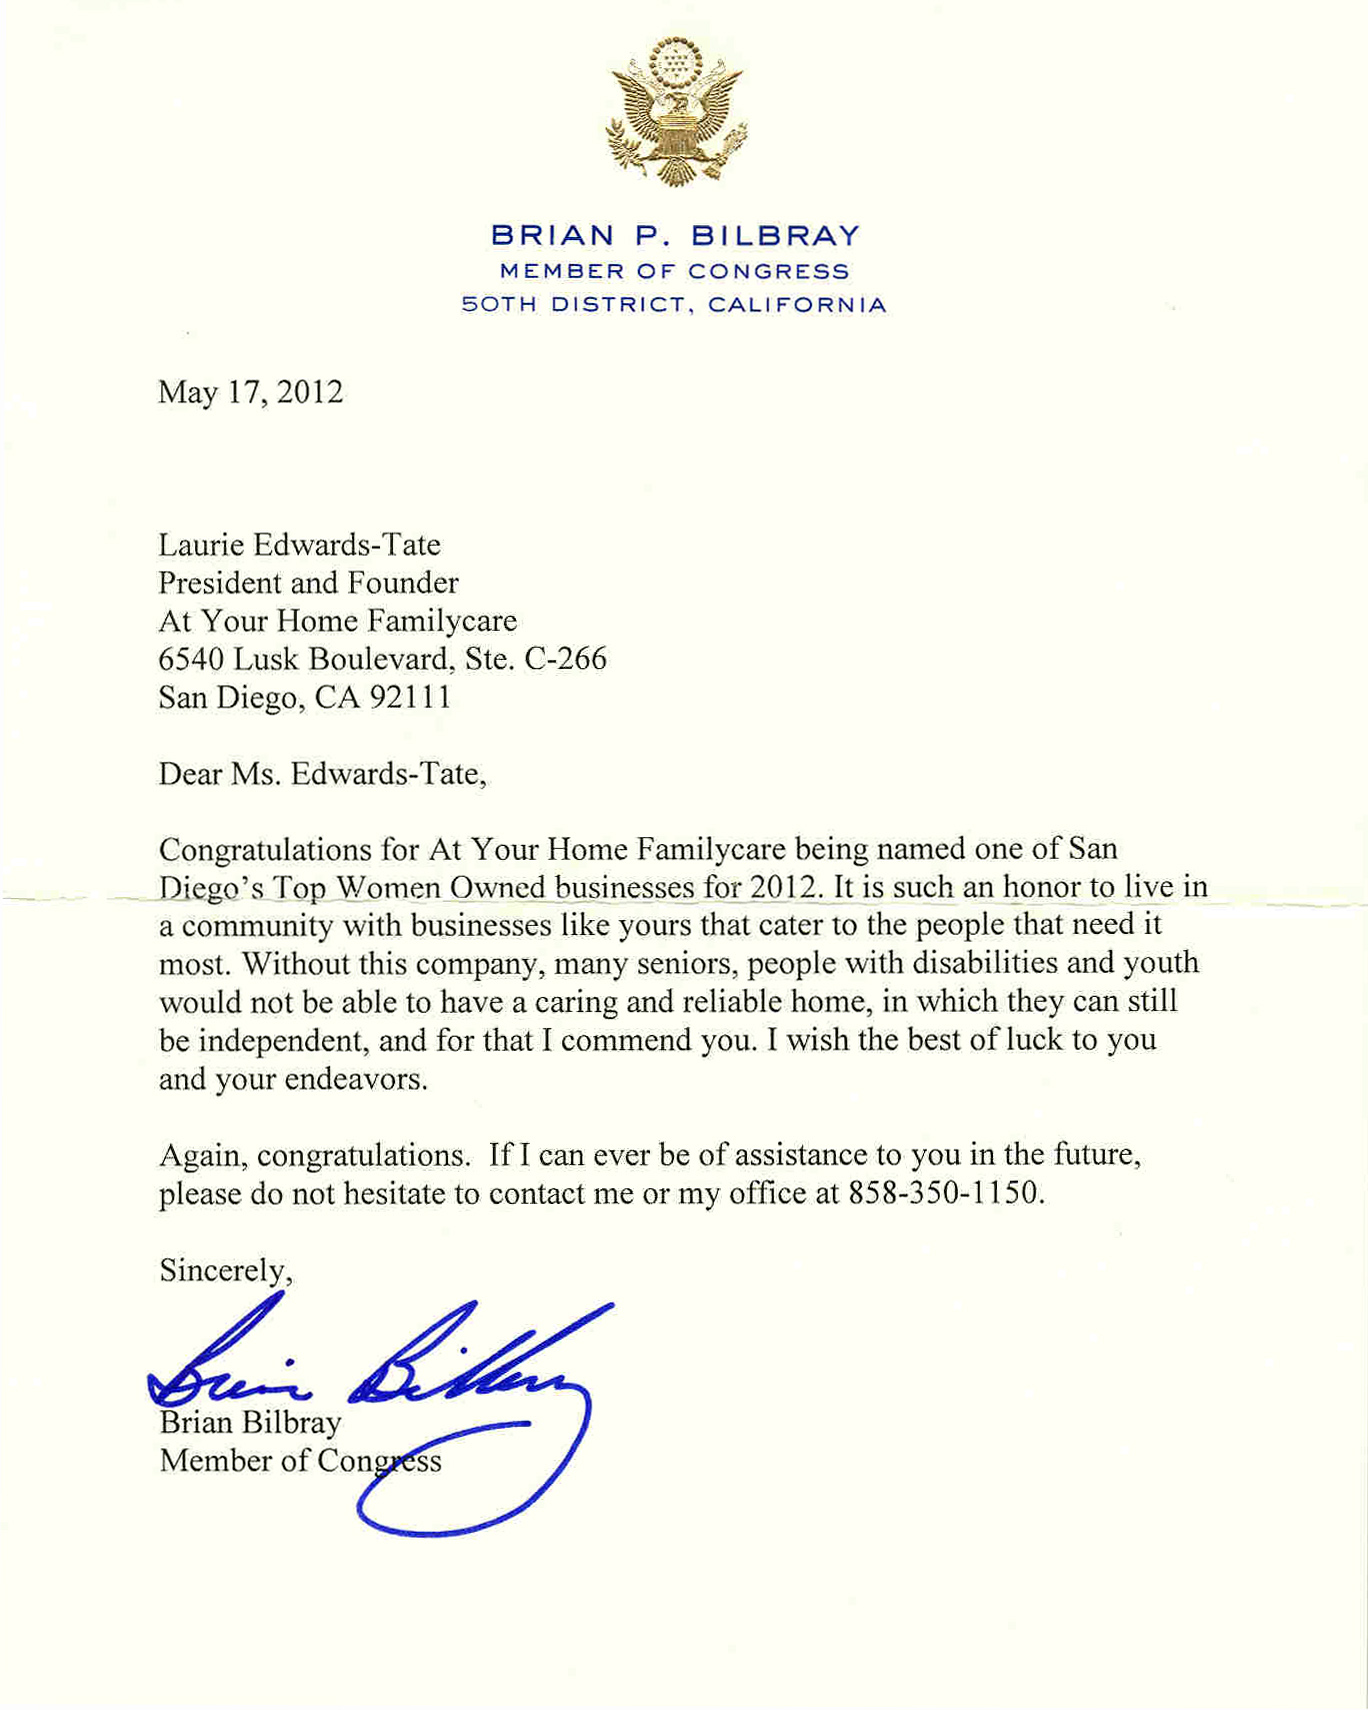 Congressman Brian Bilbray Recognizes At Your Home Familycare on Recognizing Letters